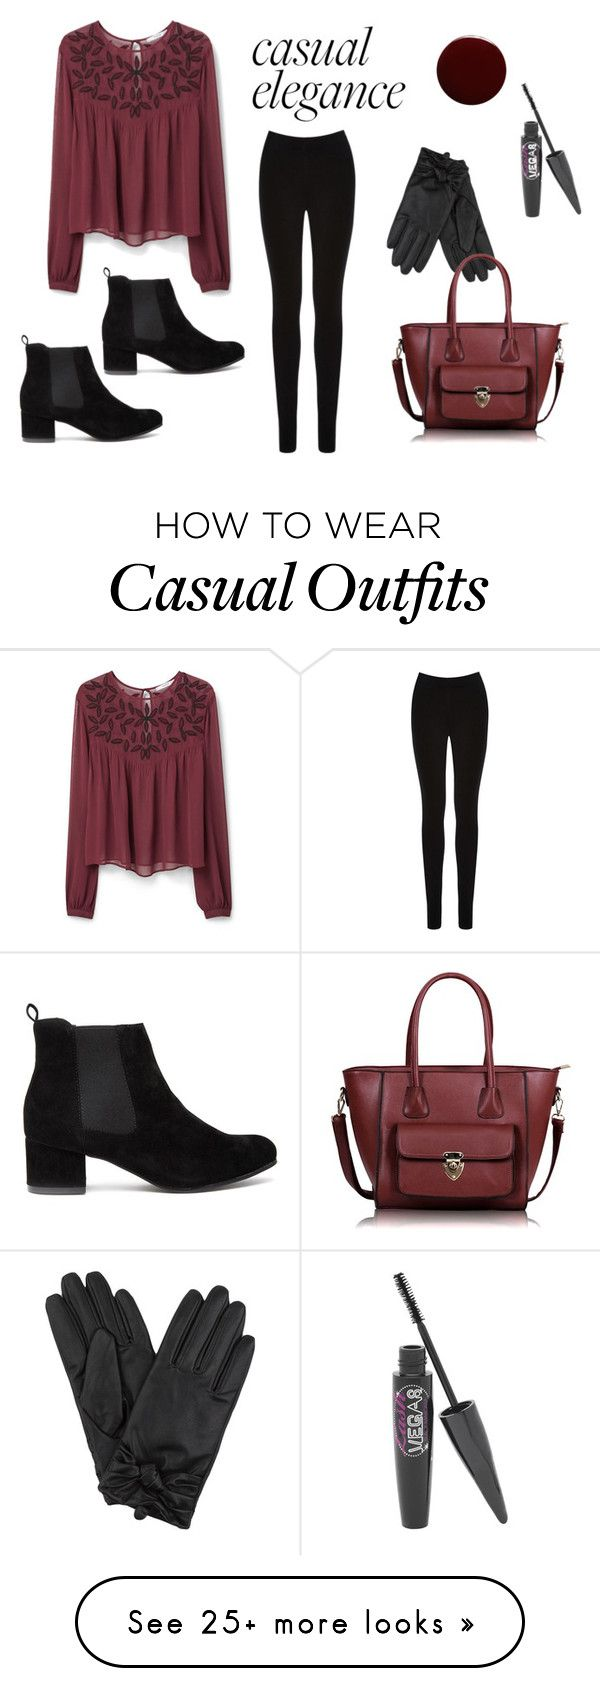 """Casual Elegance."" by juliexxx99 on Polyvore featuring Oasis, Barry M, MANGO, Lauren B. Beauty, women's clothing, women, female, woman, misses and juniors"